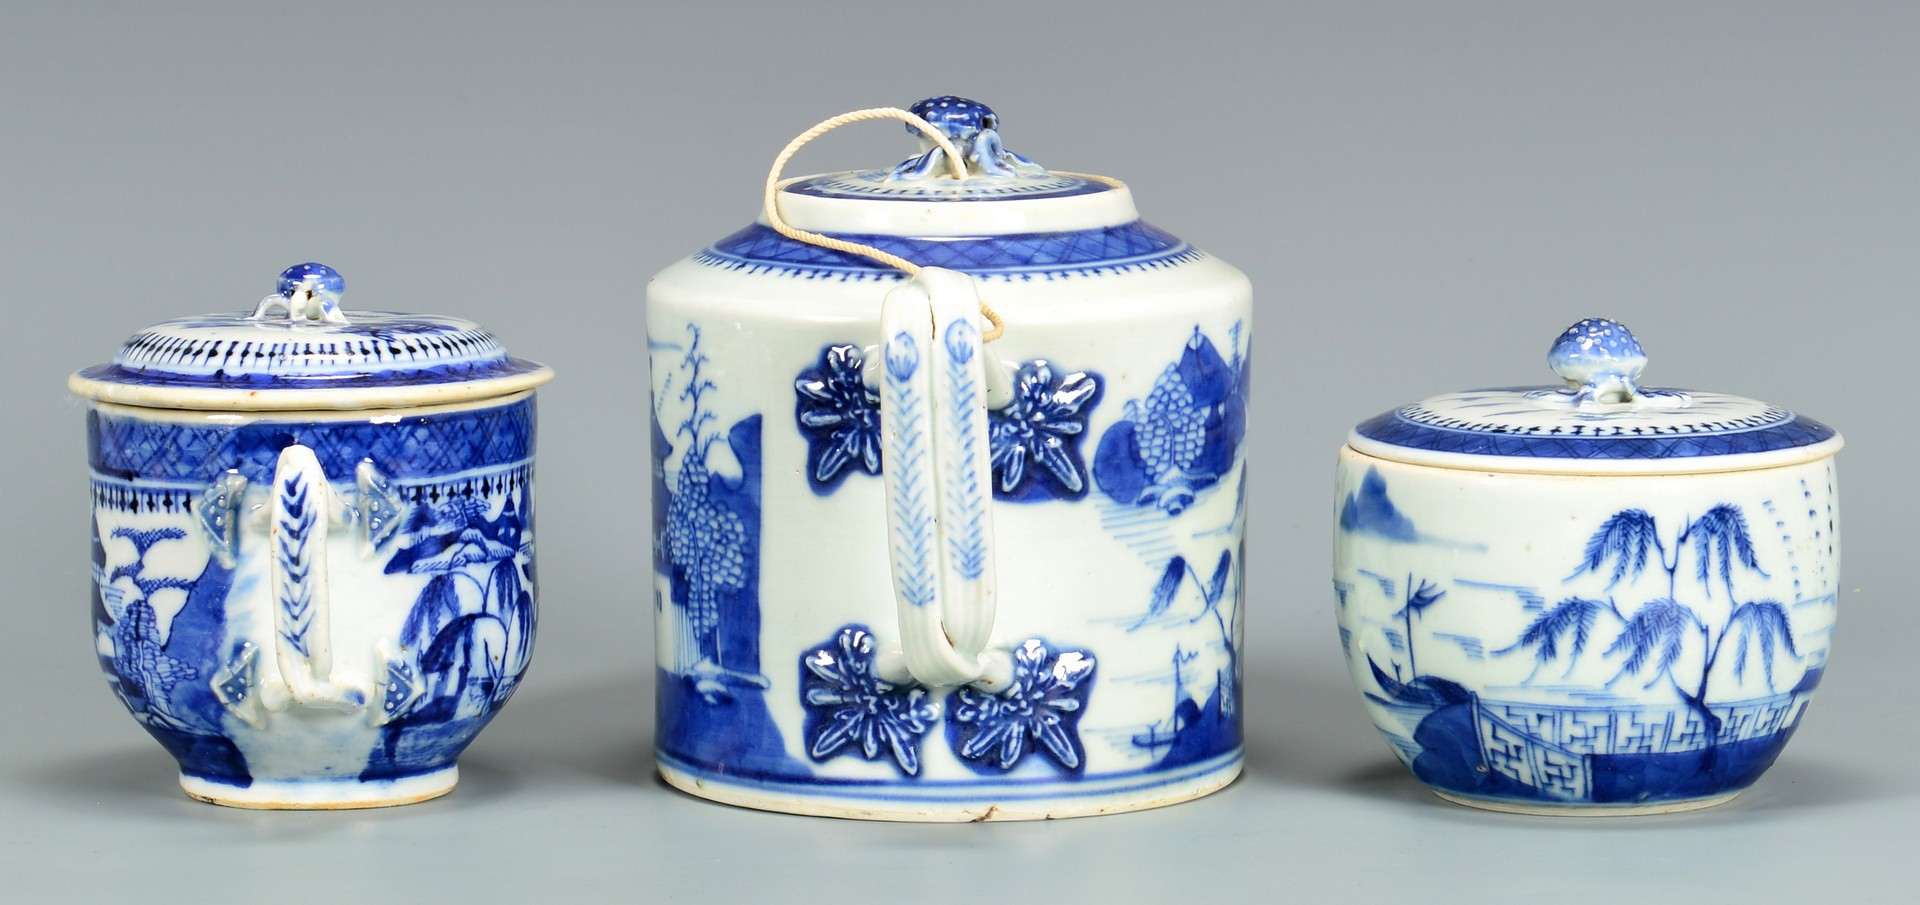 Lot 4010124: 3 Piece Chinese Blue and White Porcelain Tea Set